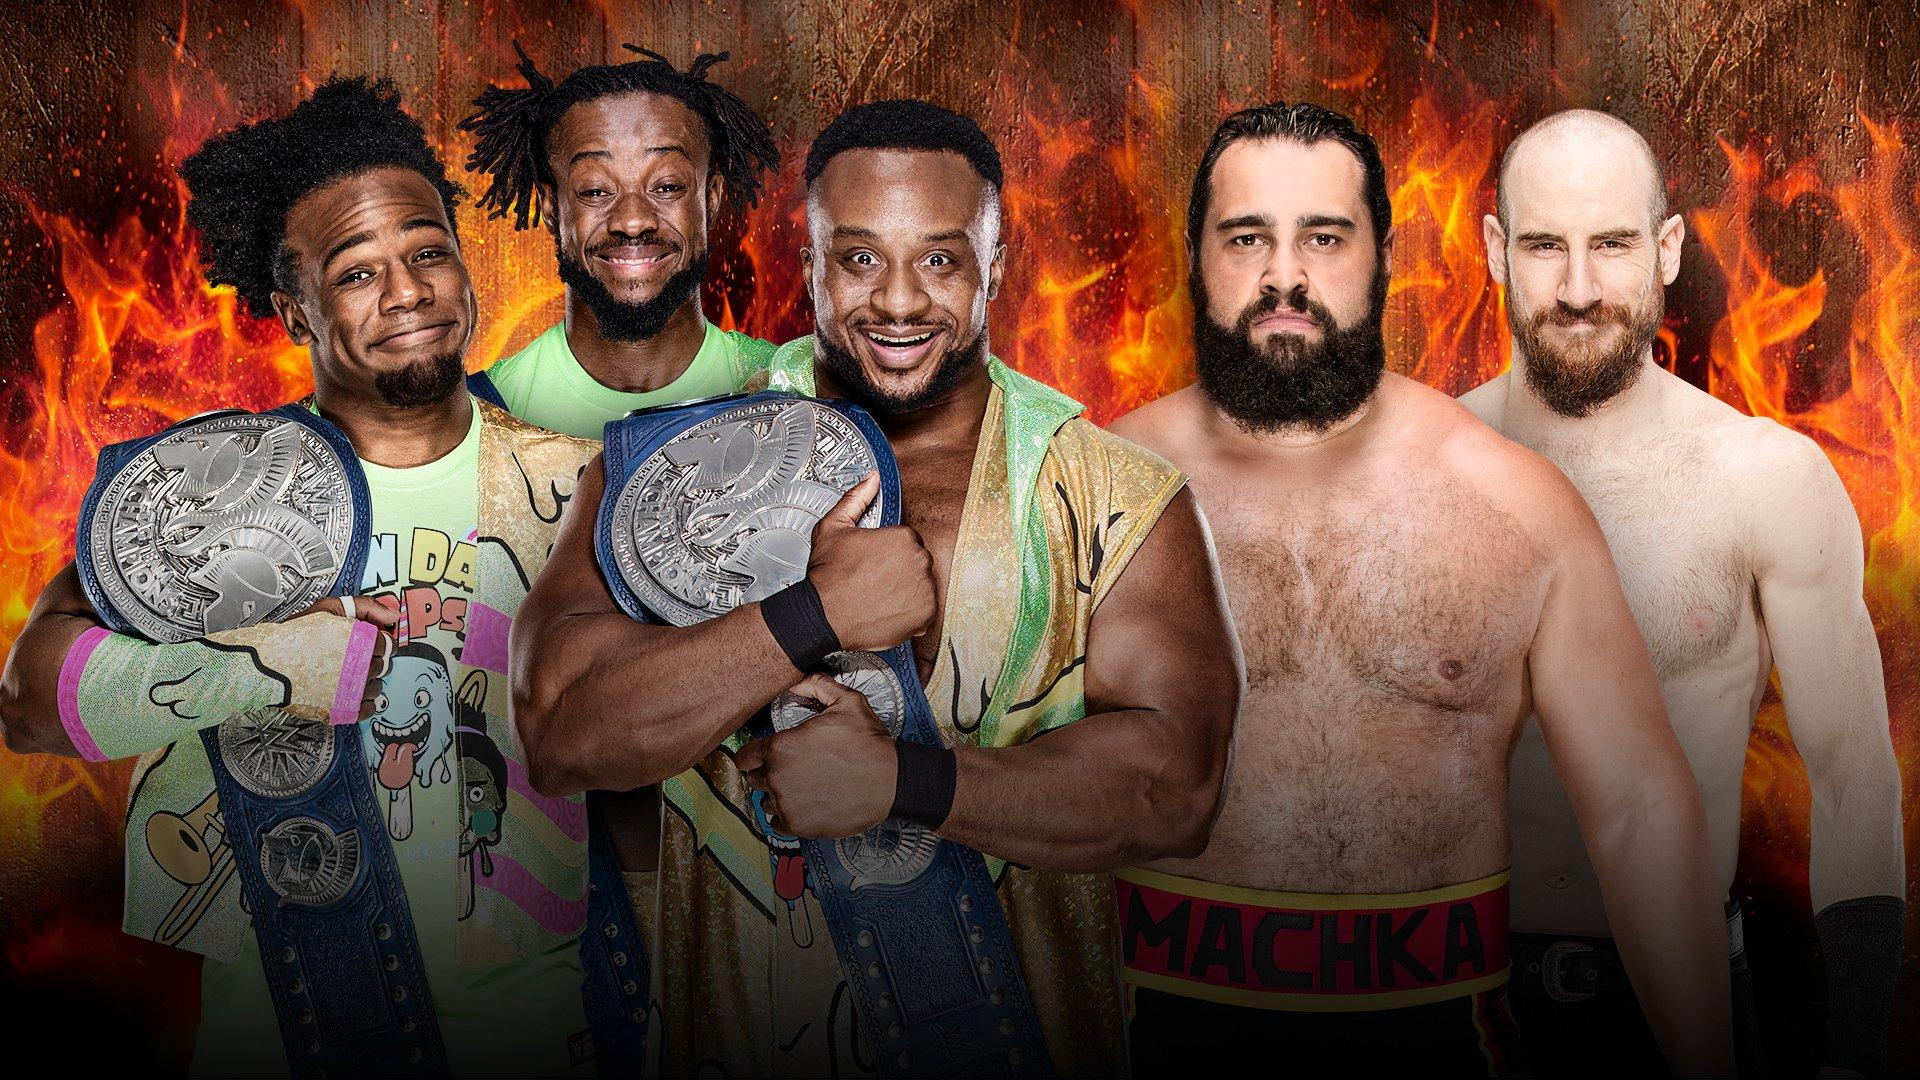 SmackDown Tag Team Champions The New Day vs Rusev et Aiden English